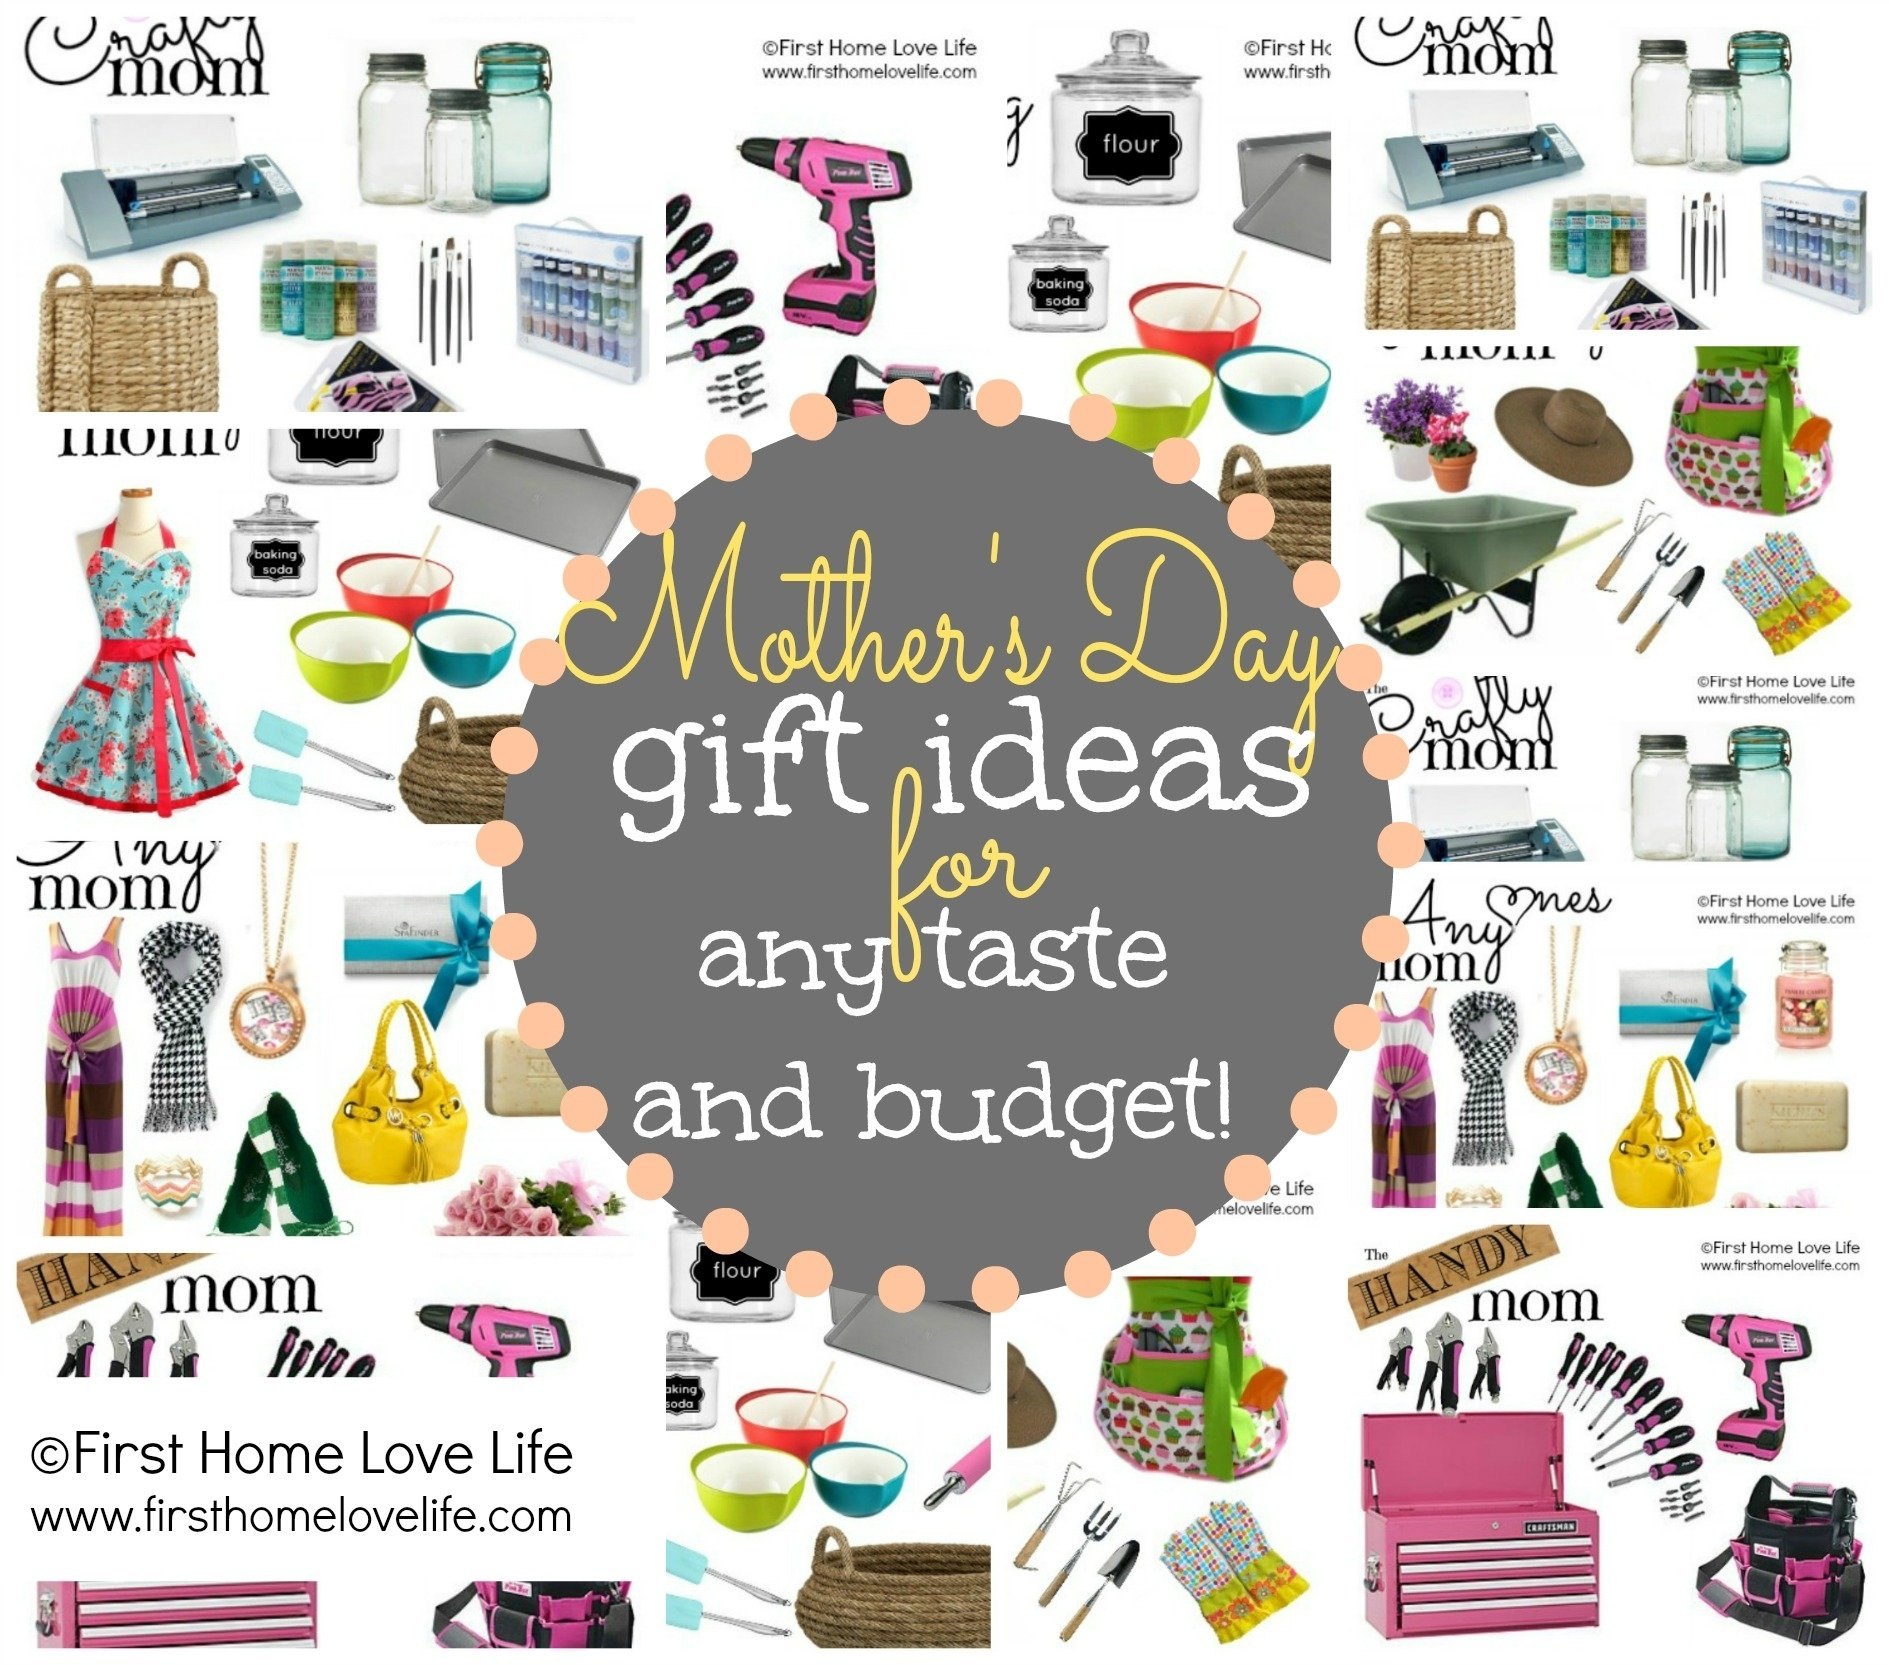 10 Stylish Gift Ideas For A Mom mothers day gift ideas first home love life 2